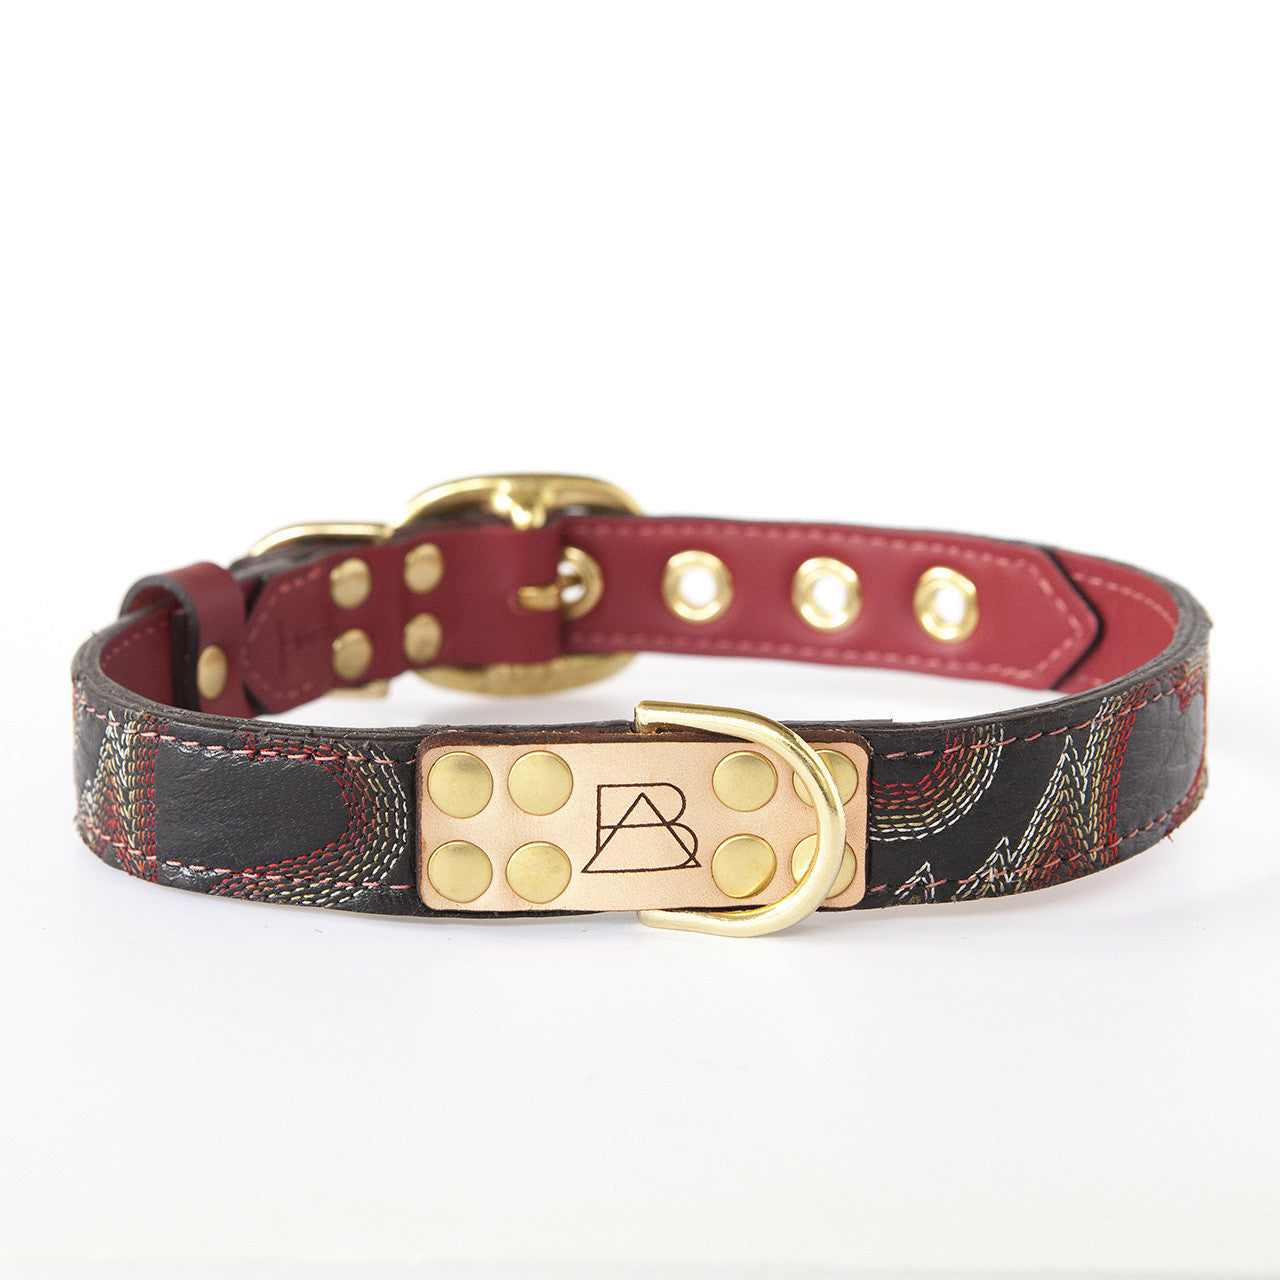 Ruby Red Dog Collar with Black Leather + Multicolored Stitching (front view)